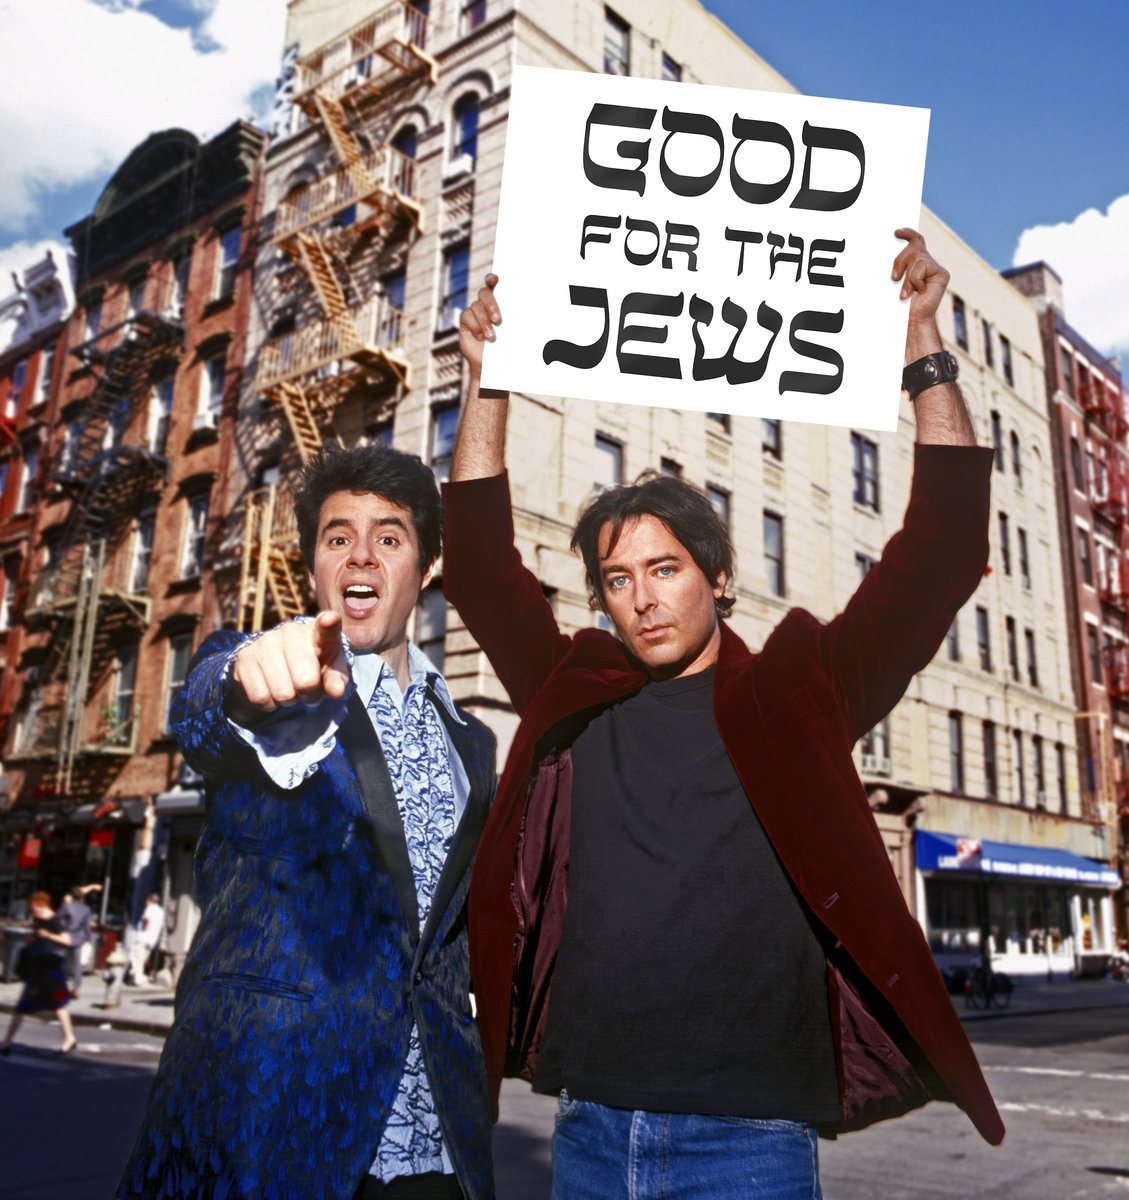 It\'s Good To Be A Jew At Christmas | Good For The Jews